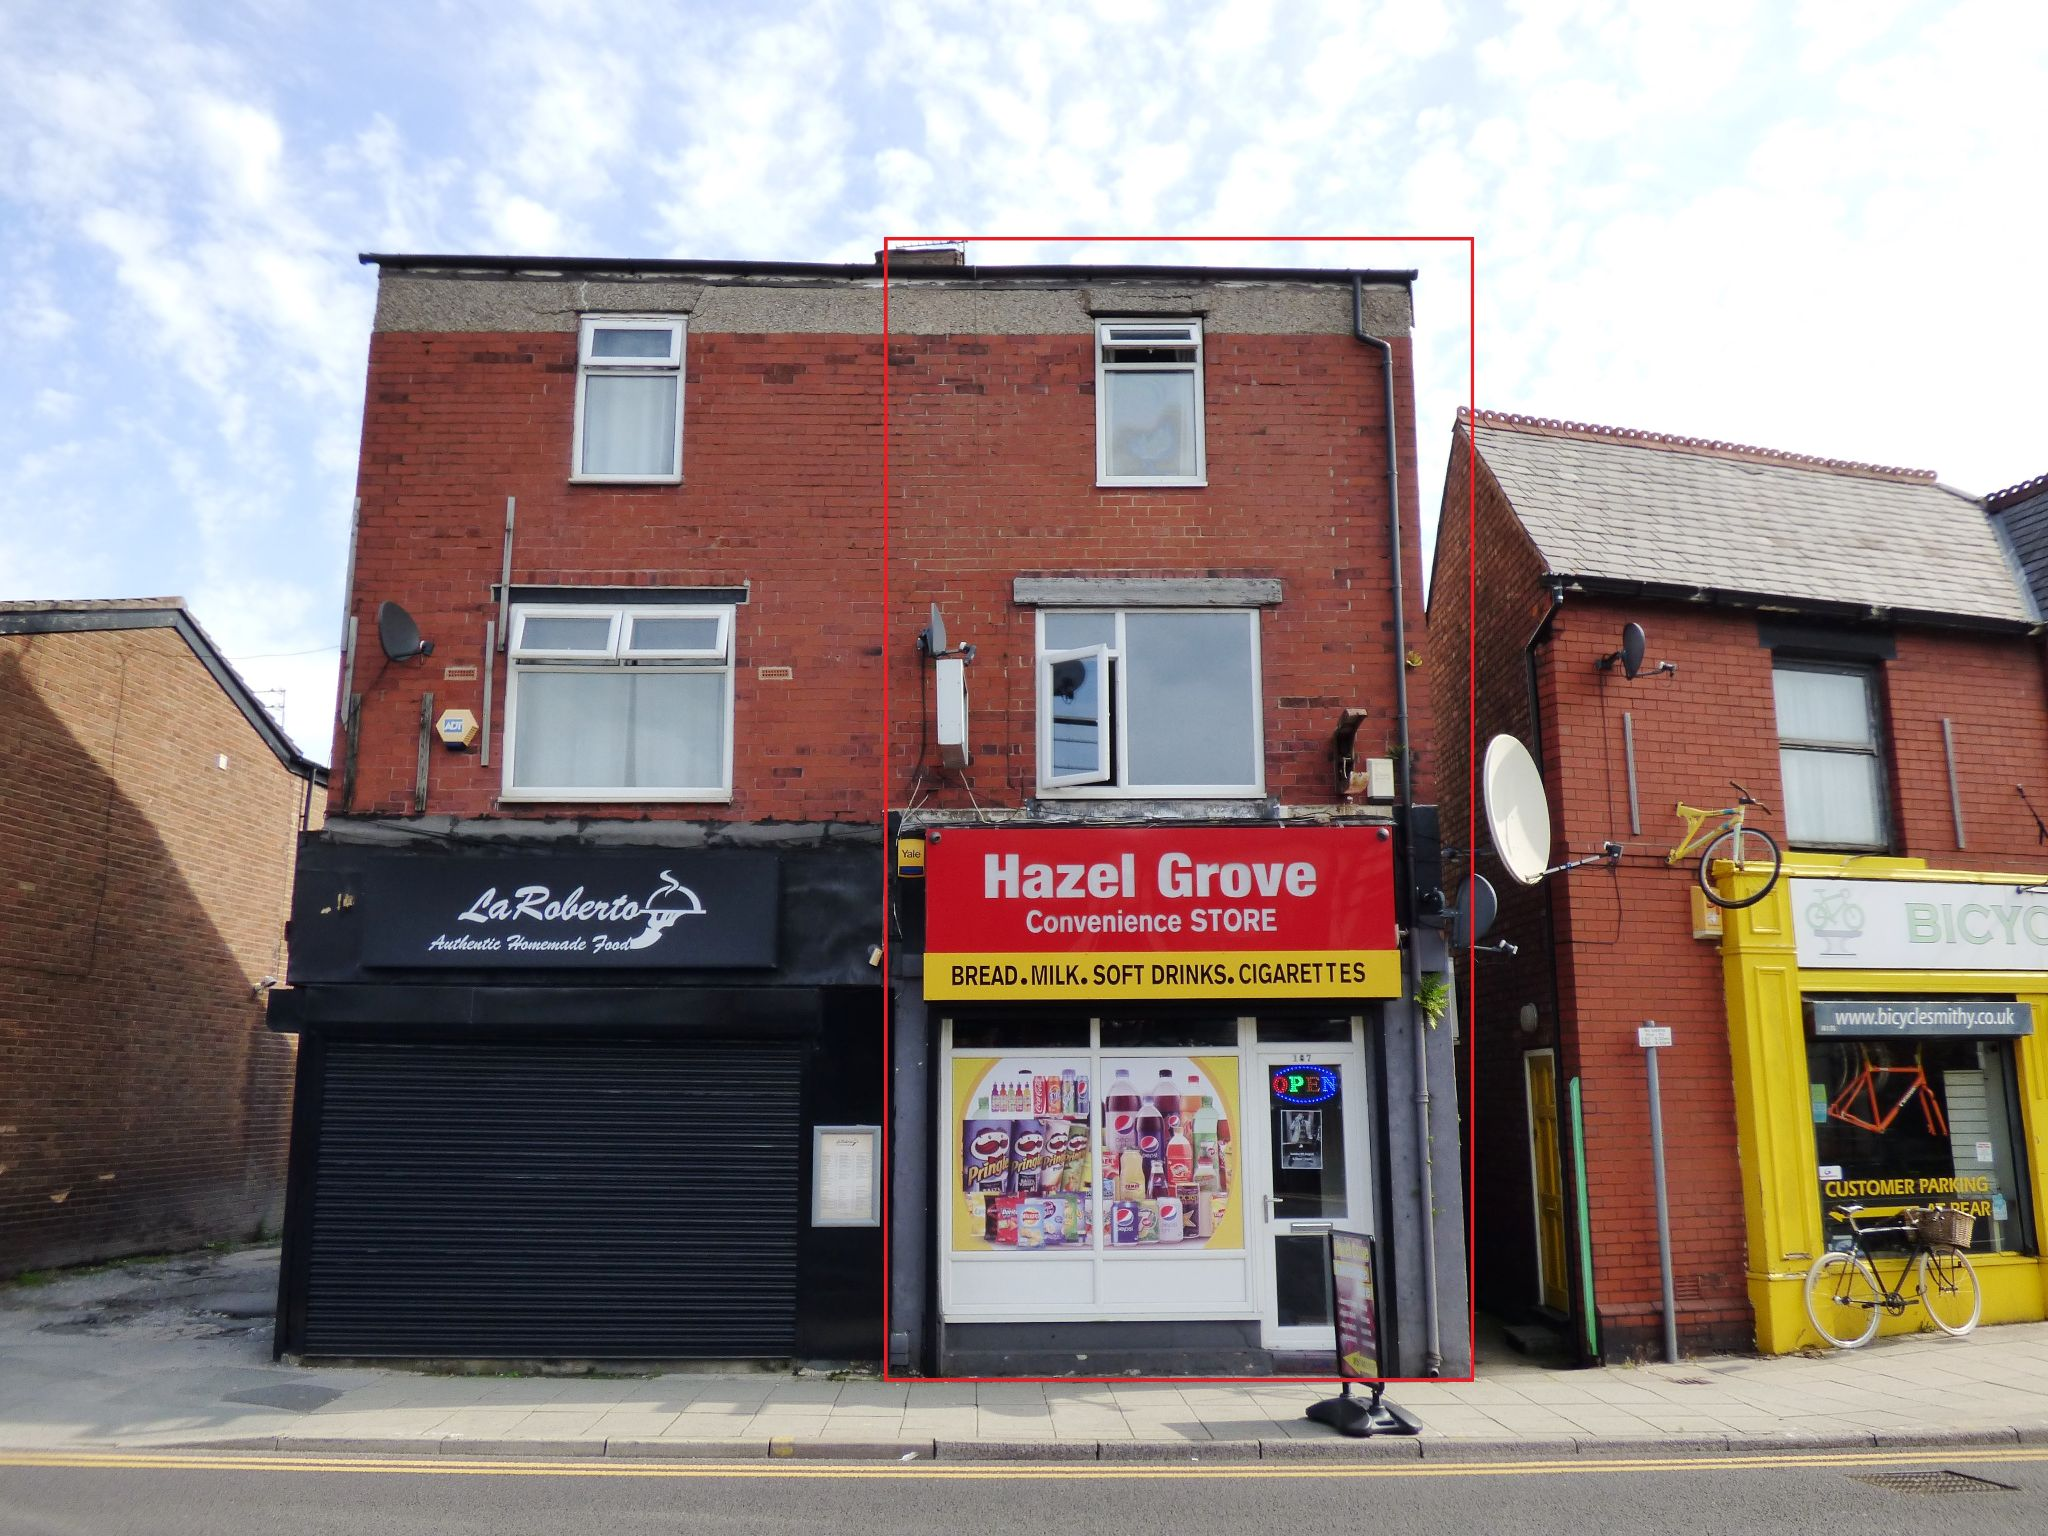 Commercial Property For Sale - Photograph 1